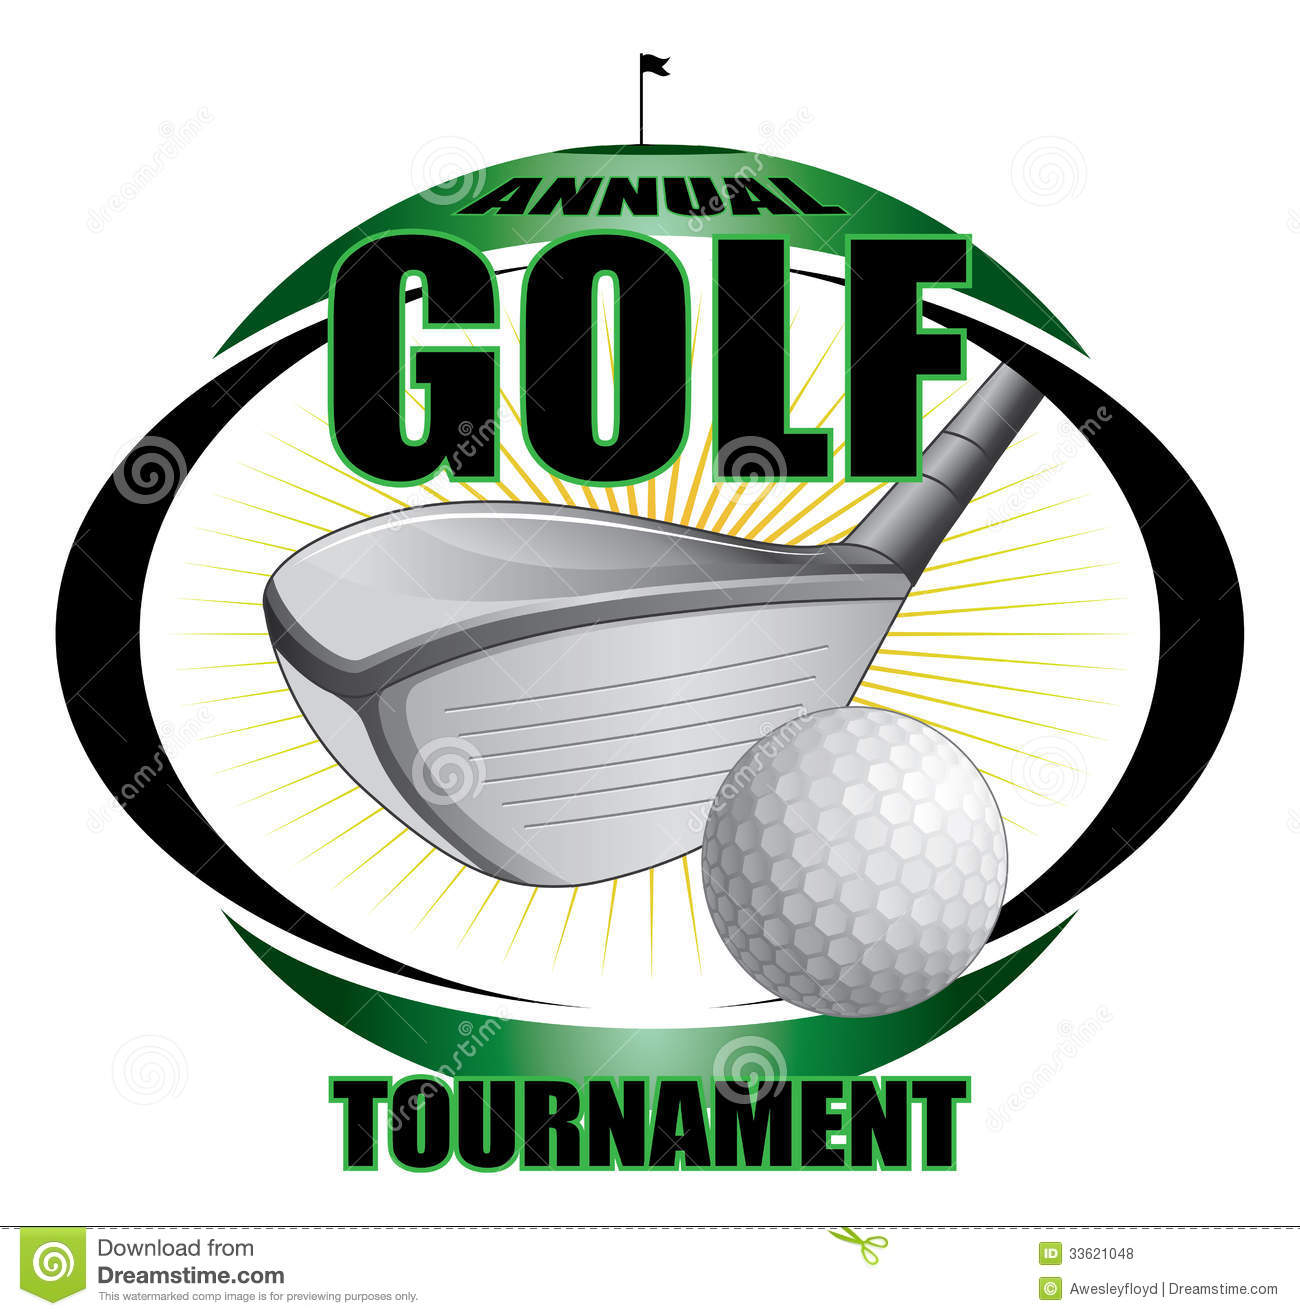 Illustration Of A Golf Tournament Design Contains Golf Clubs And Golf Golf Ball On Tee Clipart